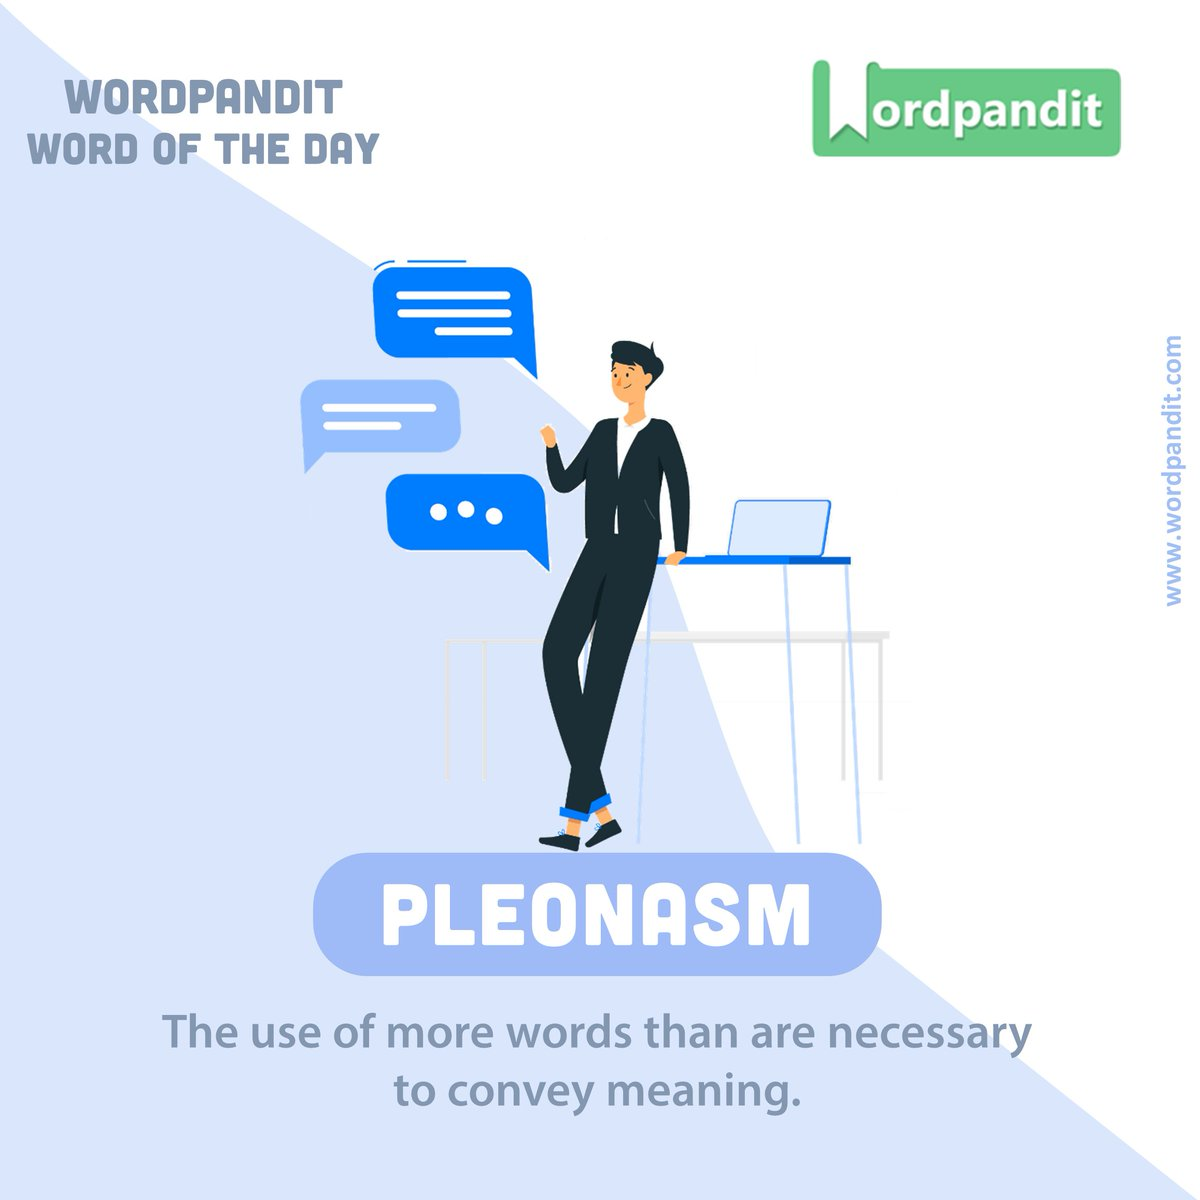 Wordpandit Auf Twitter Word Of The Day Pleonasm Sentence Example 1 His Book Was Mostly Pleonasm Because Half Of It Was Filled With Unnecessary Wording 2 Instead Of Getting Straight To The